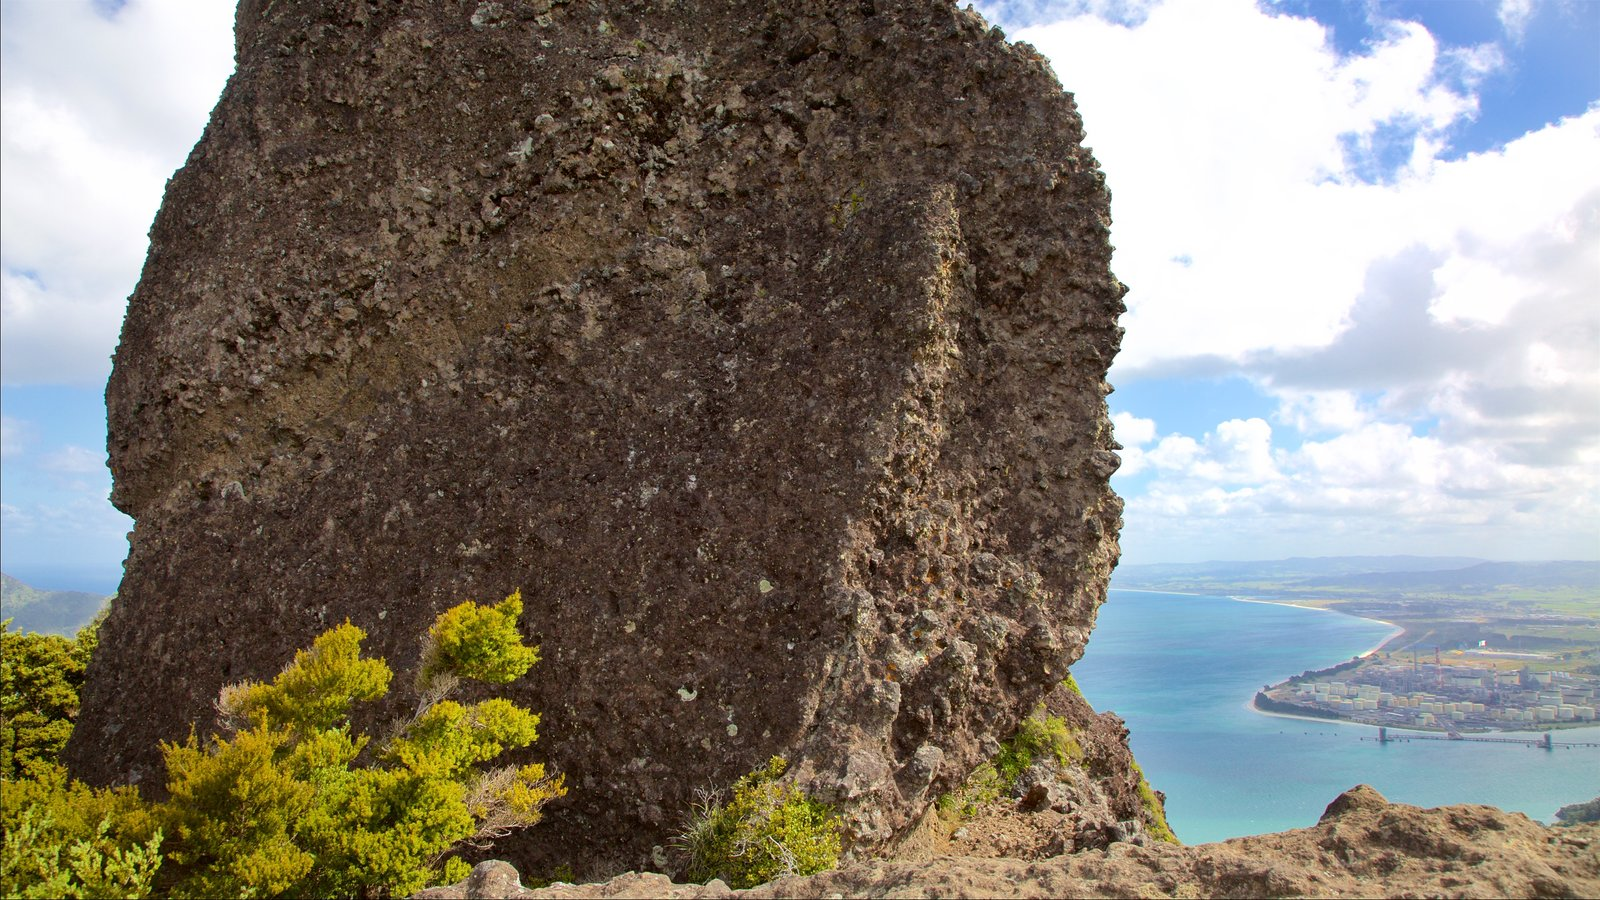 Mount Manaia featuring a bay or harbor and rocky coastline